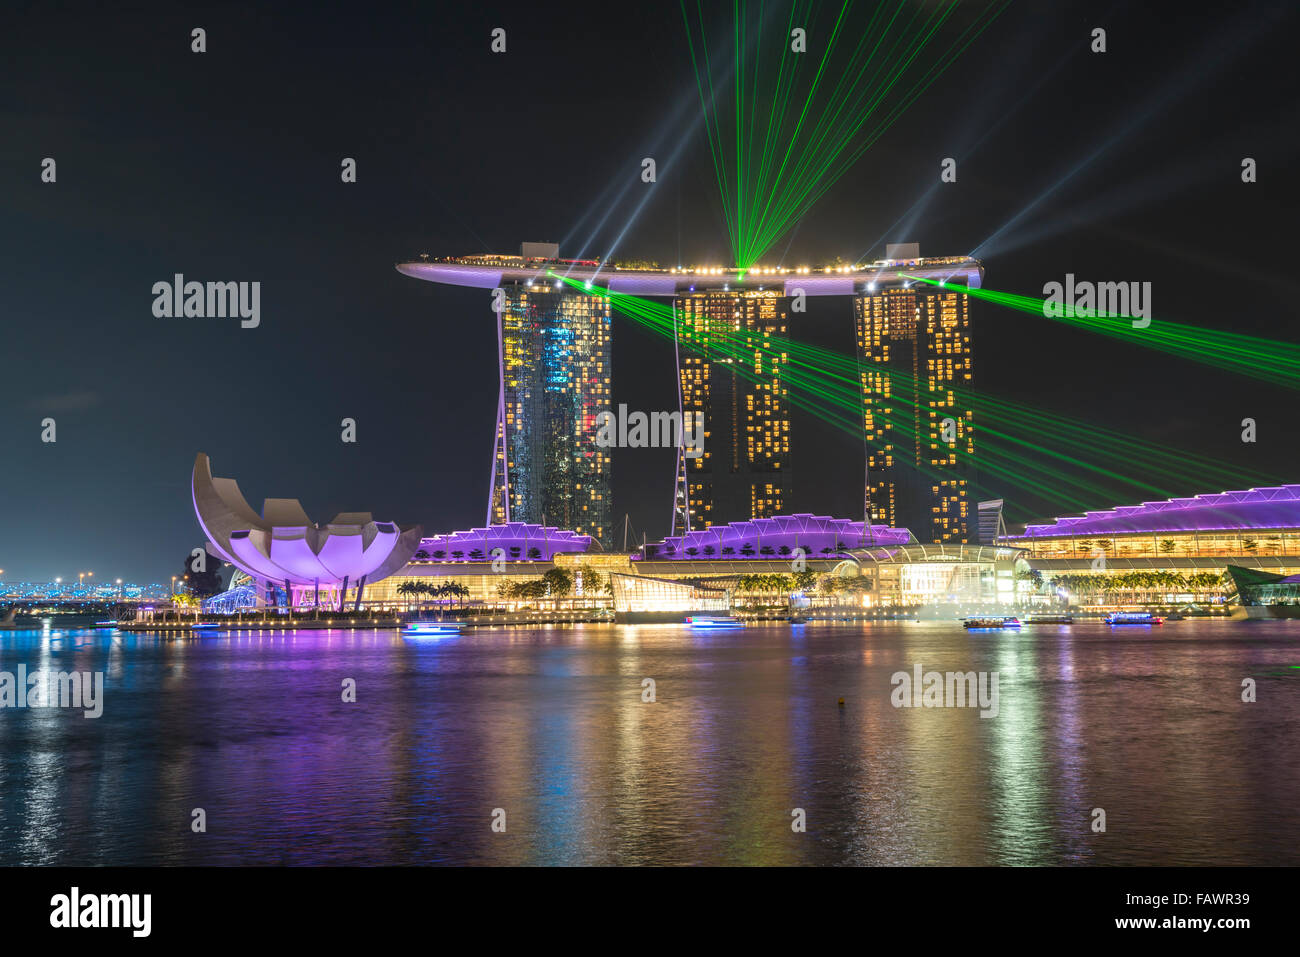 Laser show at Marina Bay Sands Hotel in the evening, Marina Bay, Singapore - Stock Image